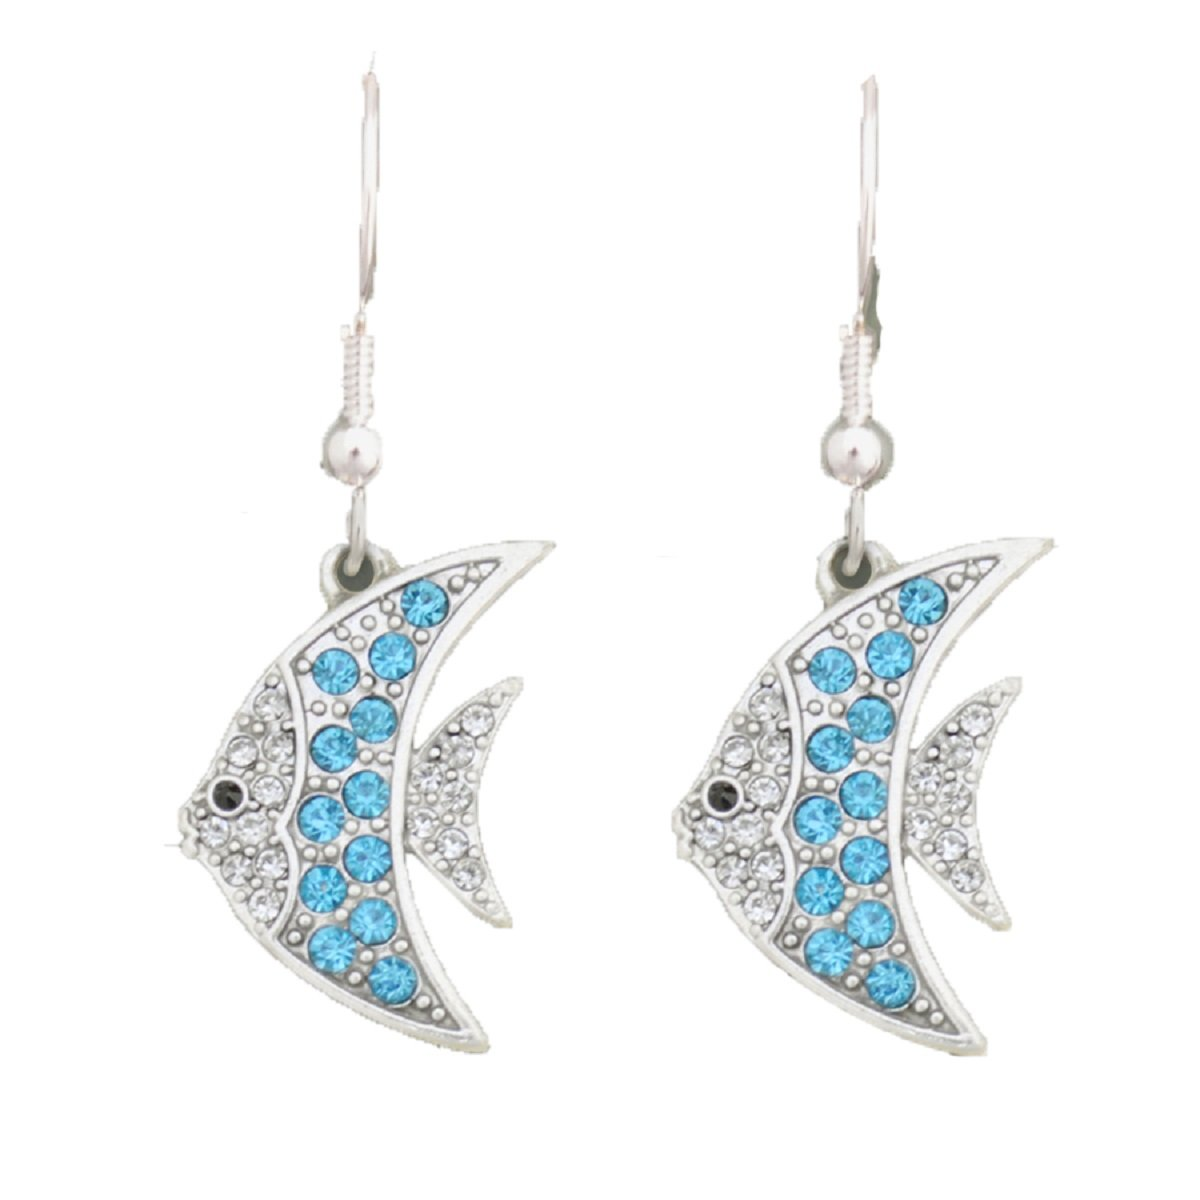 From the Heart Angel Fish Earrings with Turquoise & Clear Crystal Rhinestones Sparkling.Celebrate this Precious Little Fish!Fan tastic Fun Gift for a Tropical Fish Owner,Diver, or Beach Lover!